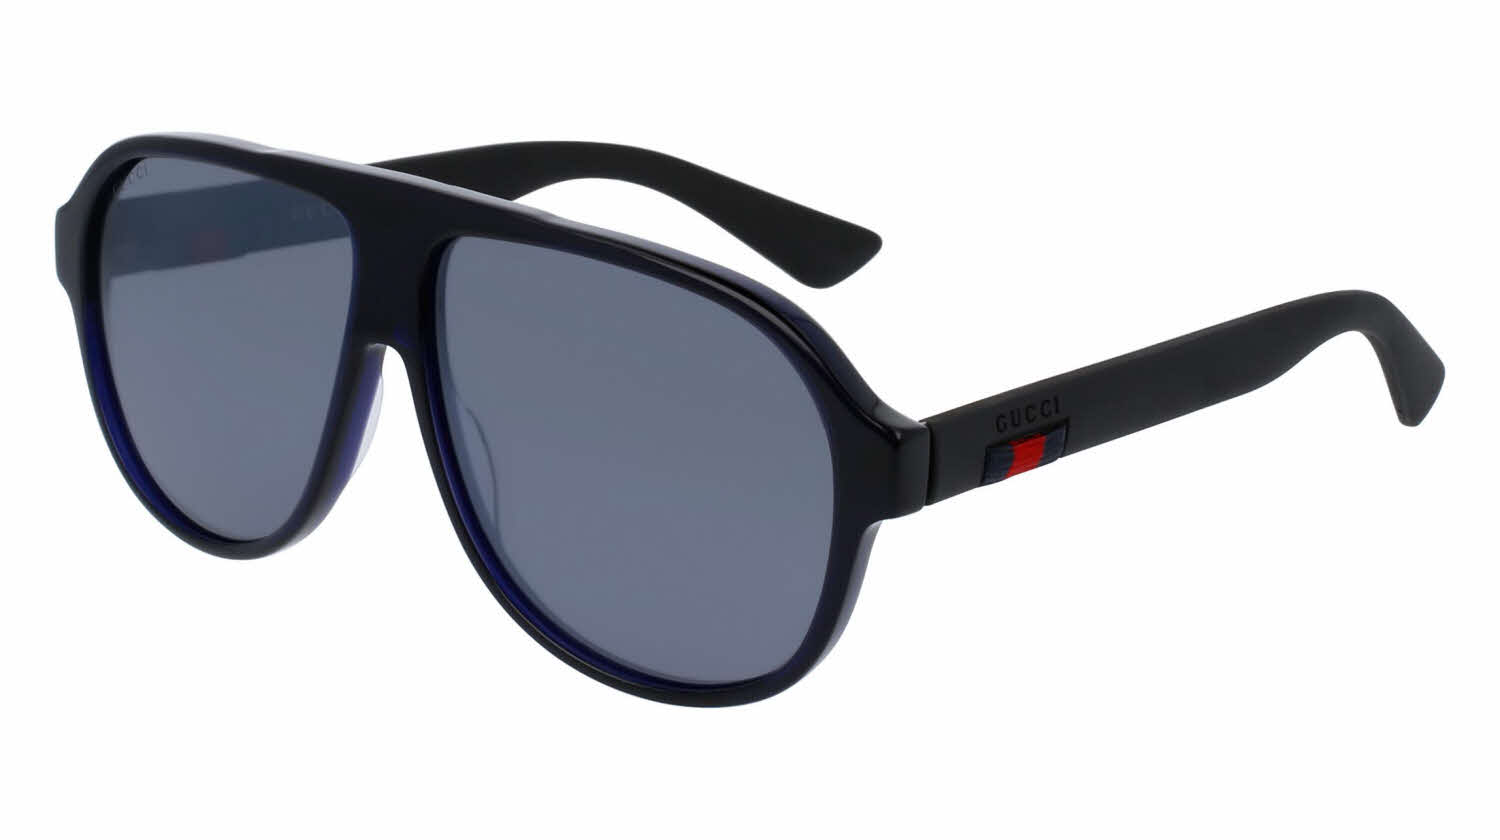 gucci sunglasses. gucci gg0009s sunglasses 5